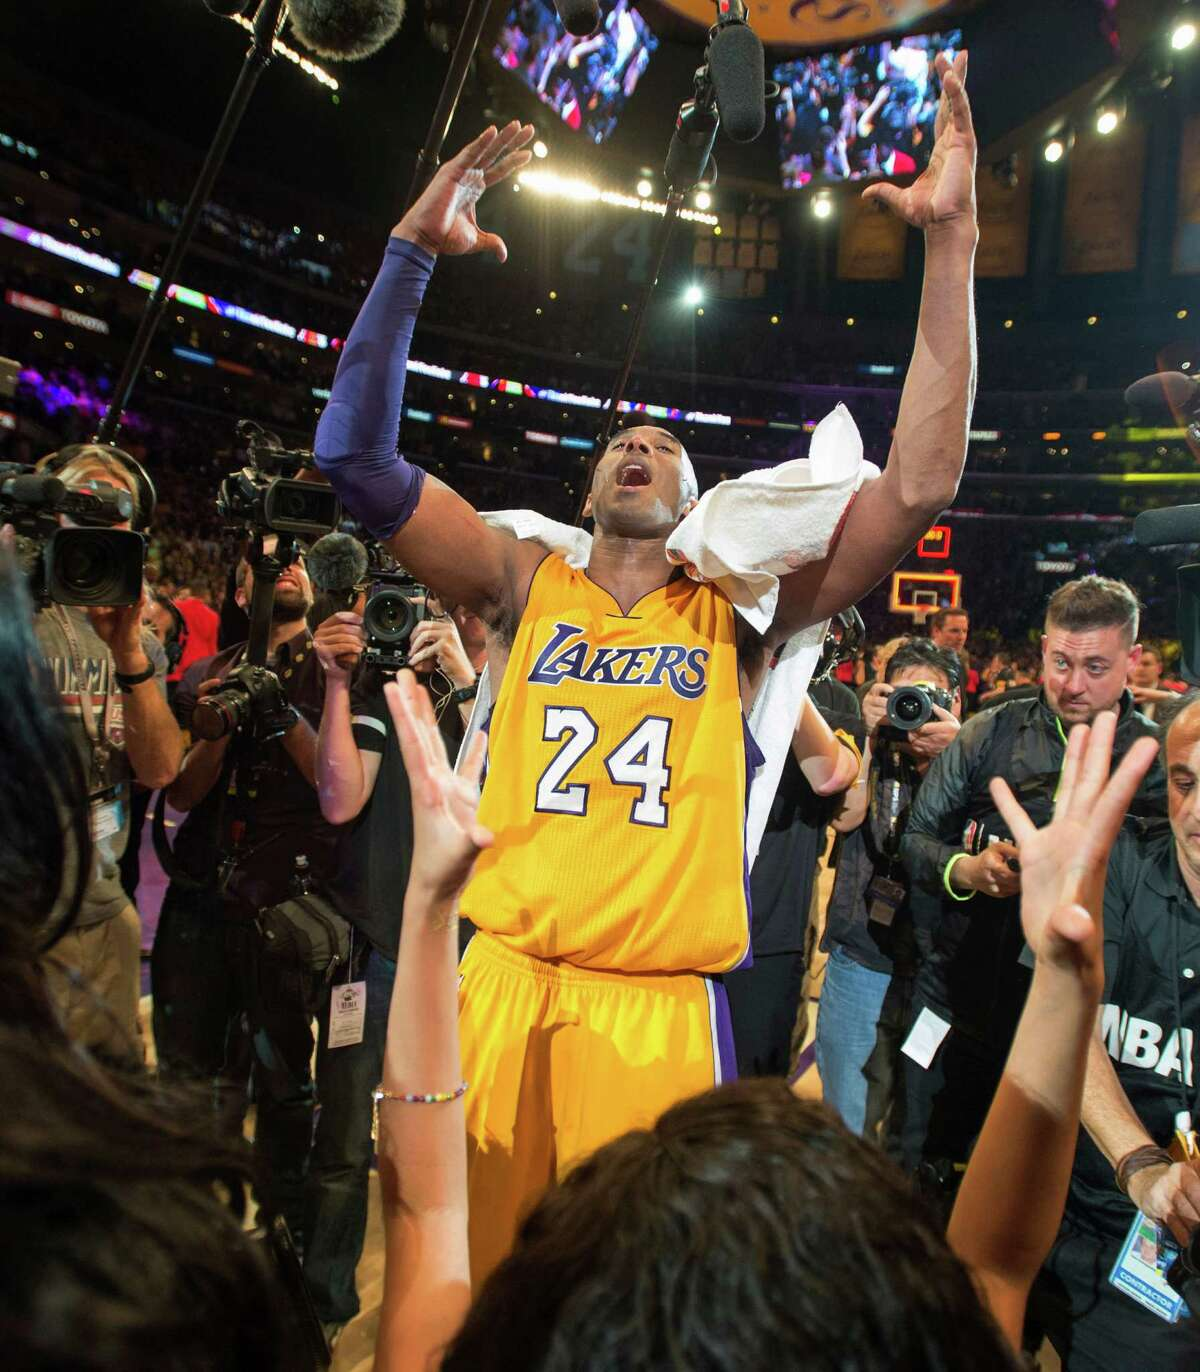 Los Angeles Lakers' forward Kobe Bryant reacts after an NBA basketball game against the Utah Jazz at Staples Center in Los Angeles, on Wednesday, April 13, 2016. Kobe Bryant went out with a Hollywood ending to his remarkable career. He scored 60 points in his final NBA game Wednesday night, wrapping up 20 years in the NBA with an unbelievable offensive showcase in the Lakers' 101-96 victory over the Utah Jazz. (Michael Goulding/The Orange County Register via AP) MAGS OUT; LOS ANGELES TIMES OUT; MANDATORY CREDIT